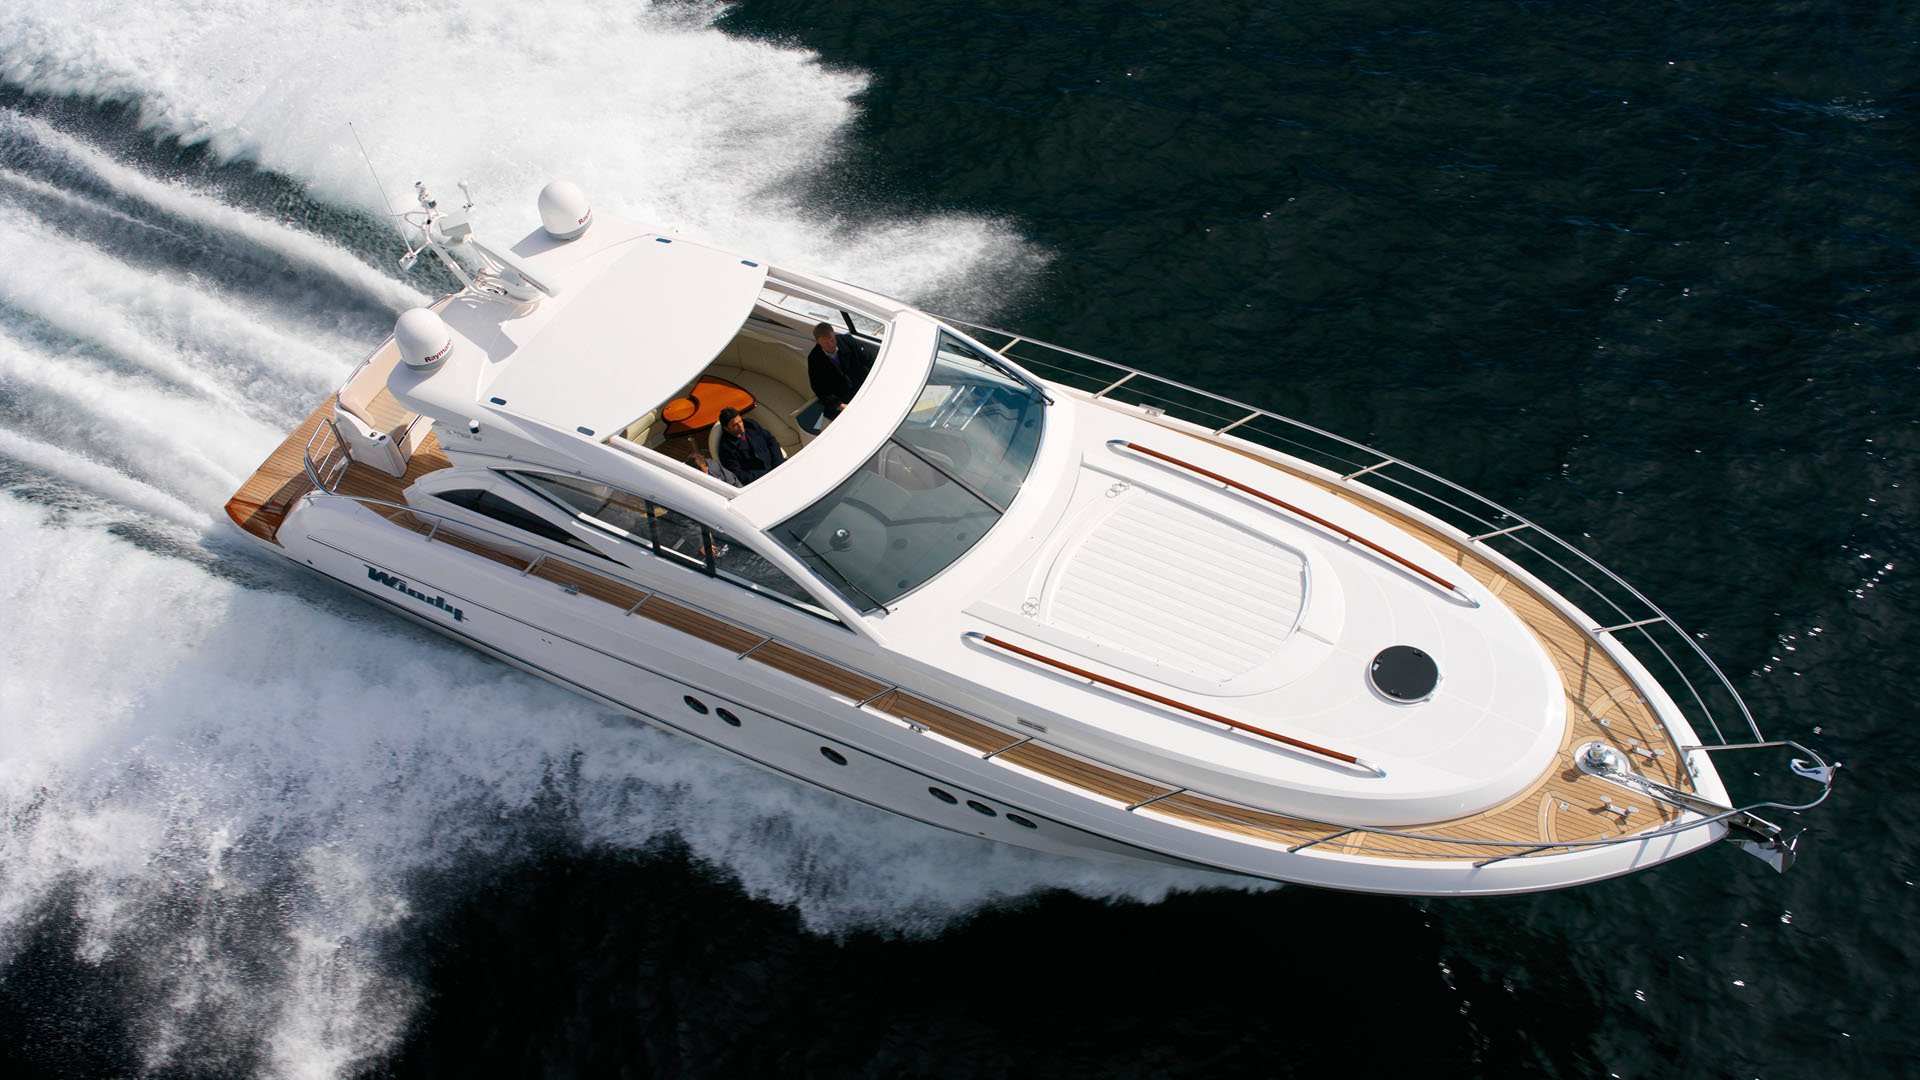 Speed Boat Wallpapers posted by Sarah Walker